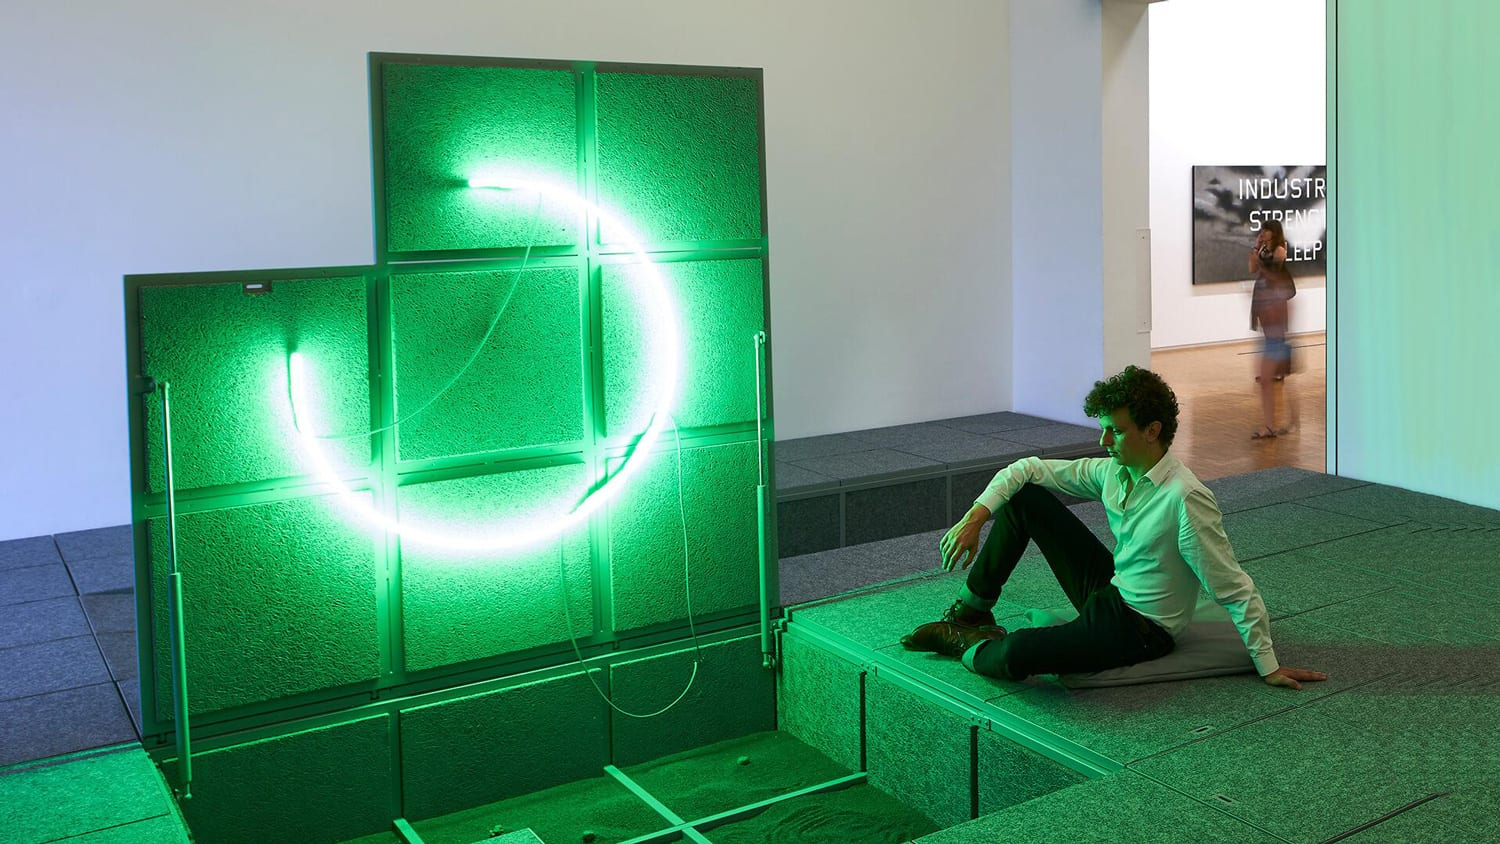 3-8 Installation by Leopold Banchini & Laure Jaffuel at Centre Pompidou in Paris | Yellowtrace